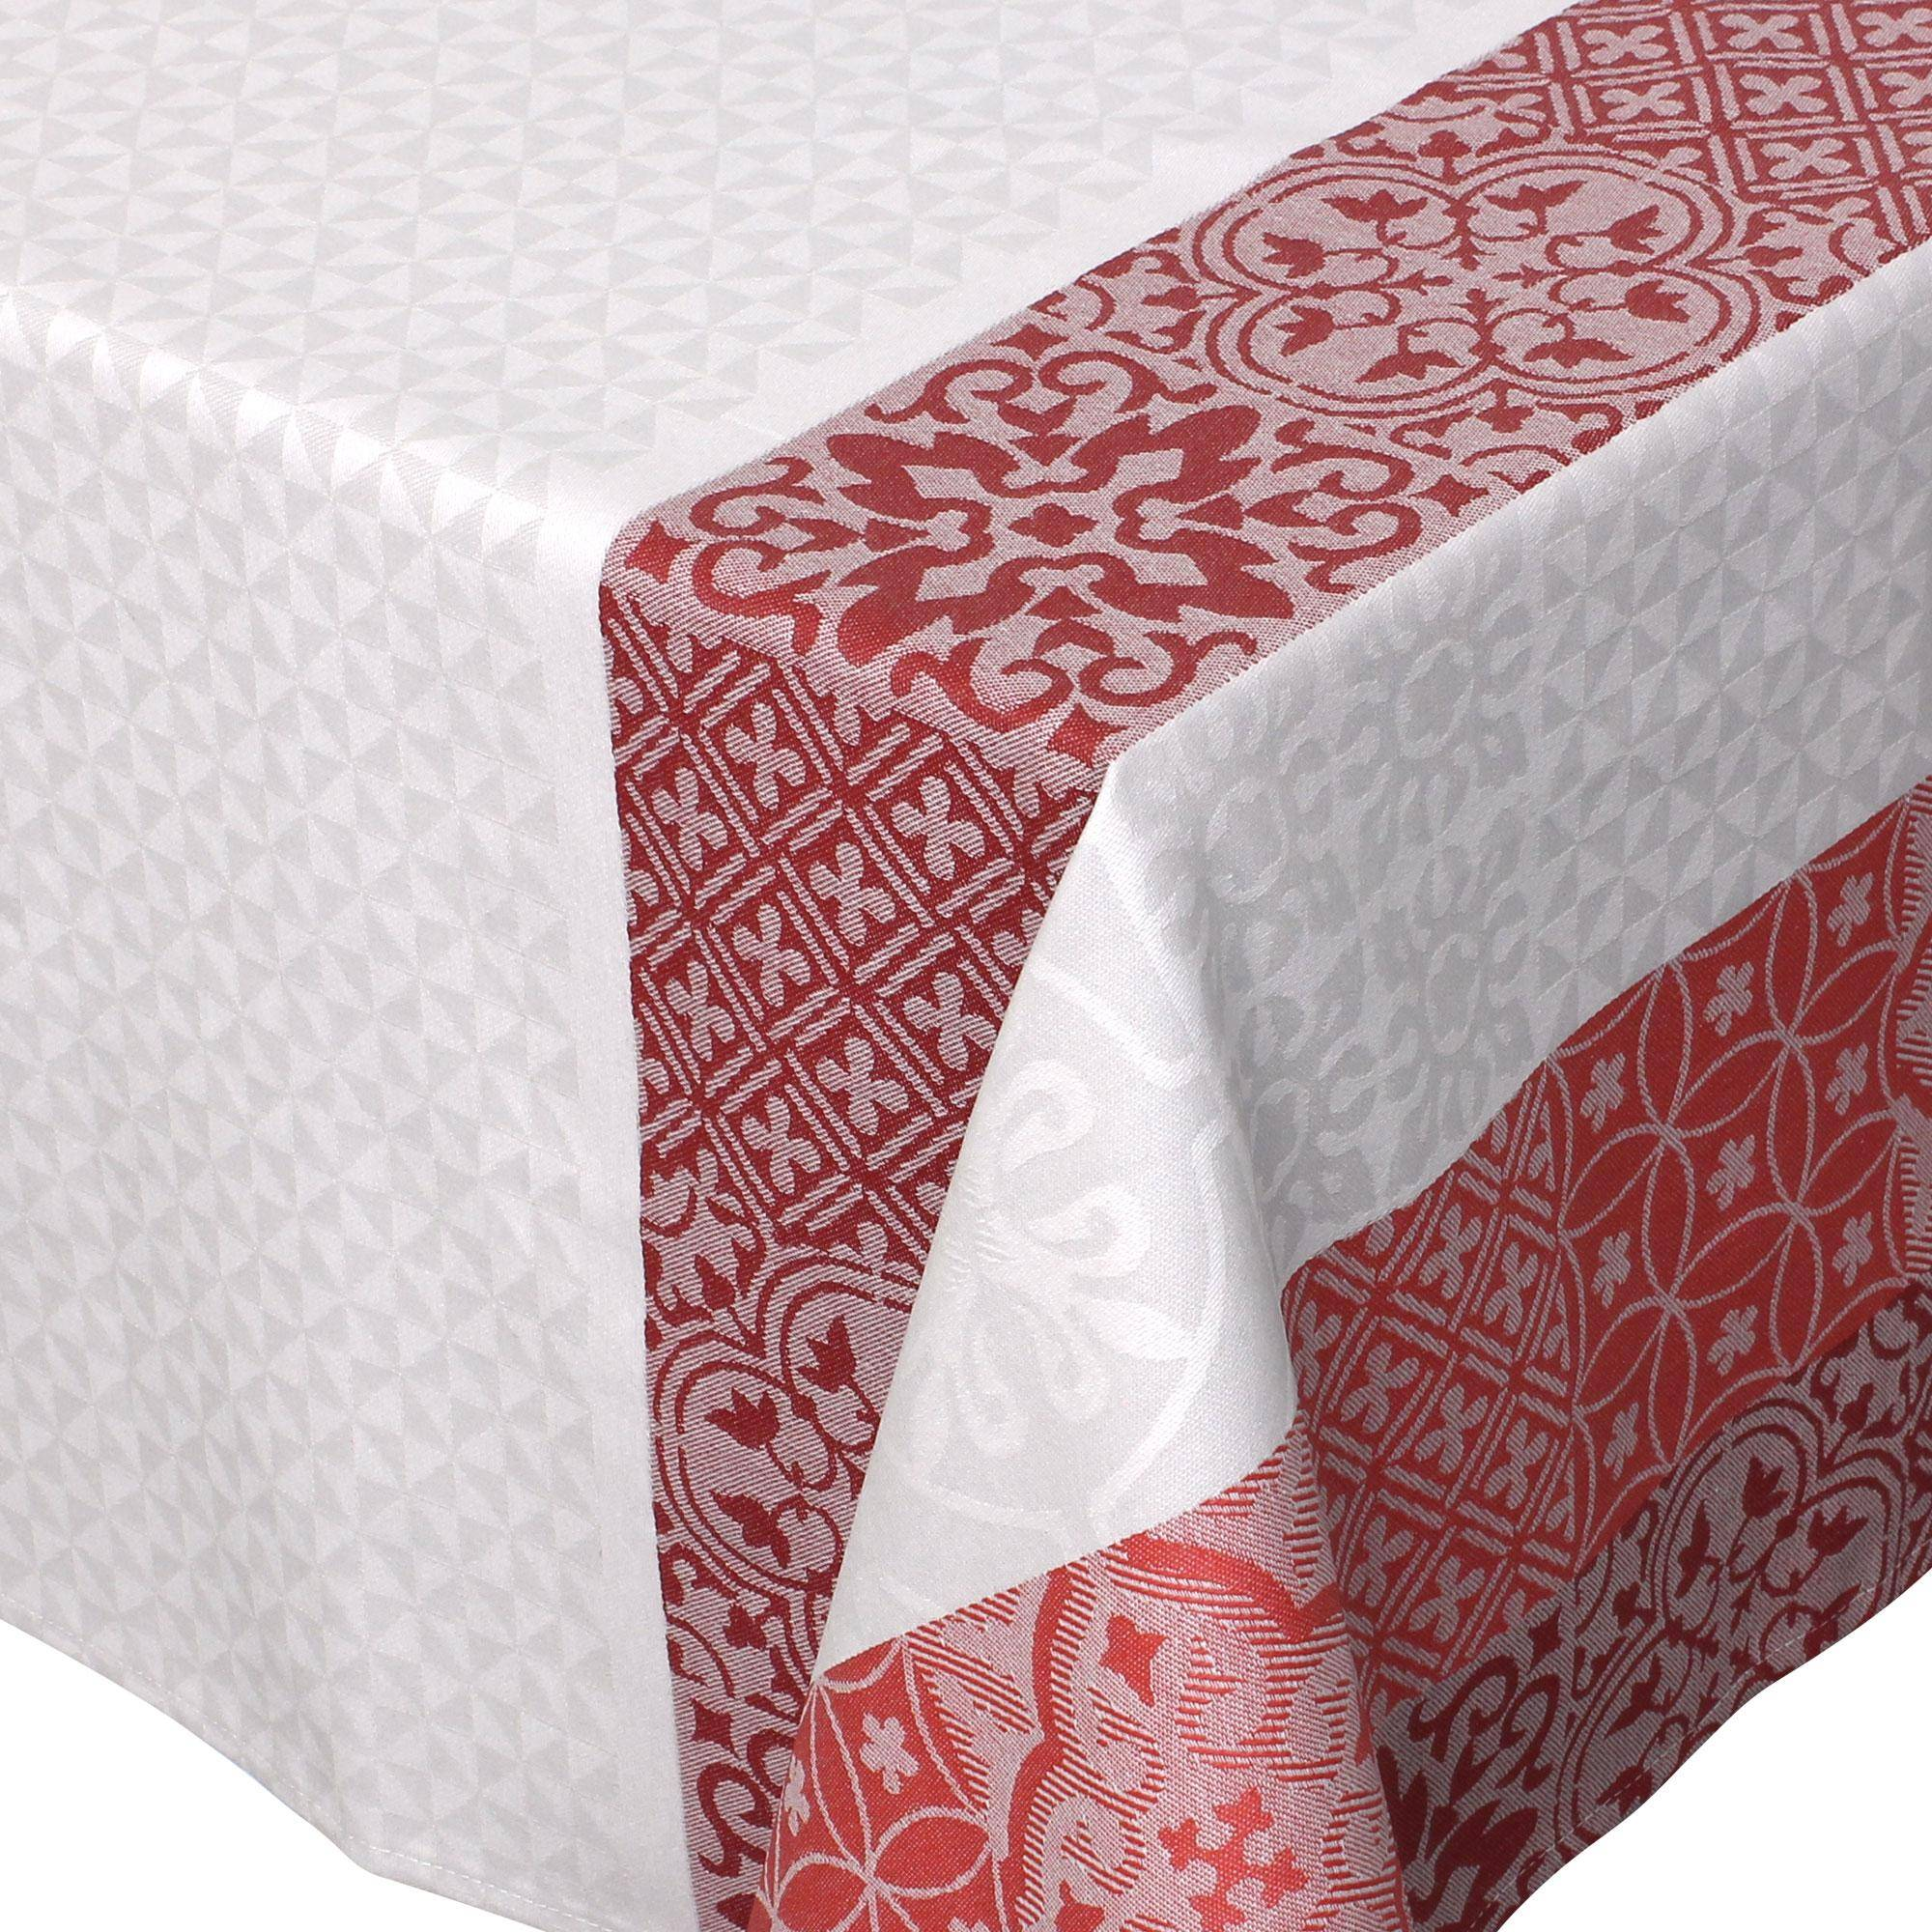 Linnea Nappe carrée 150x150 cm Jacquard 100% coton + enduction acrylique MOSAIC RUBIS Rouge